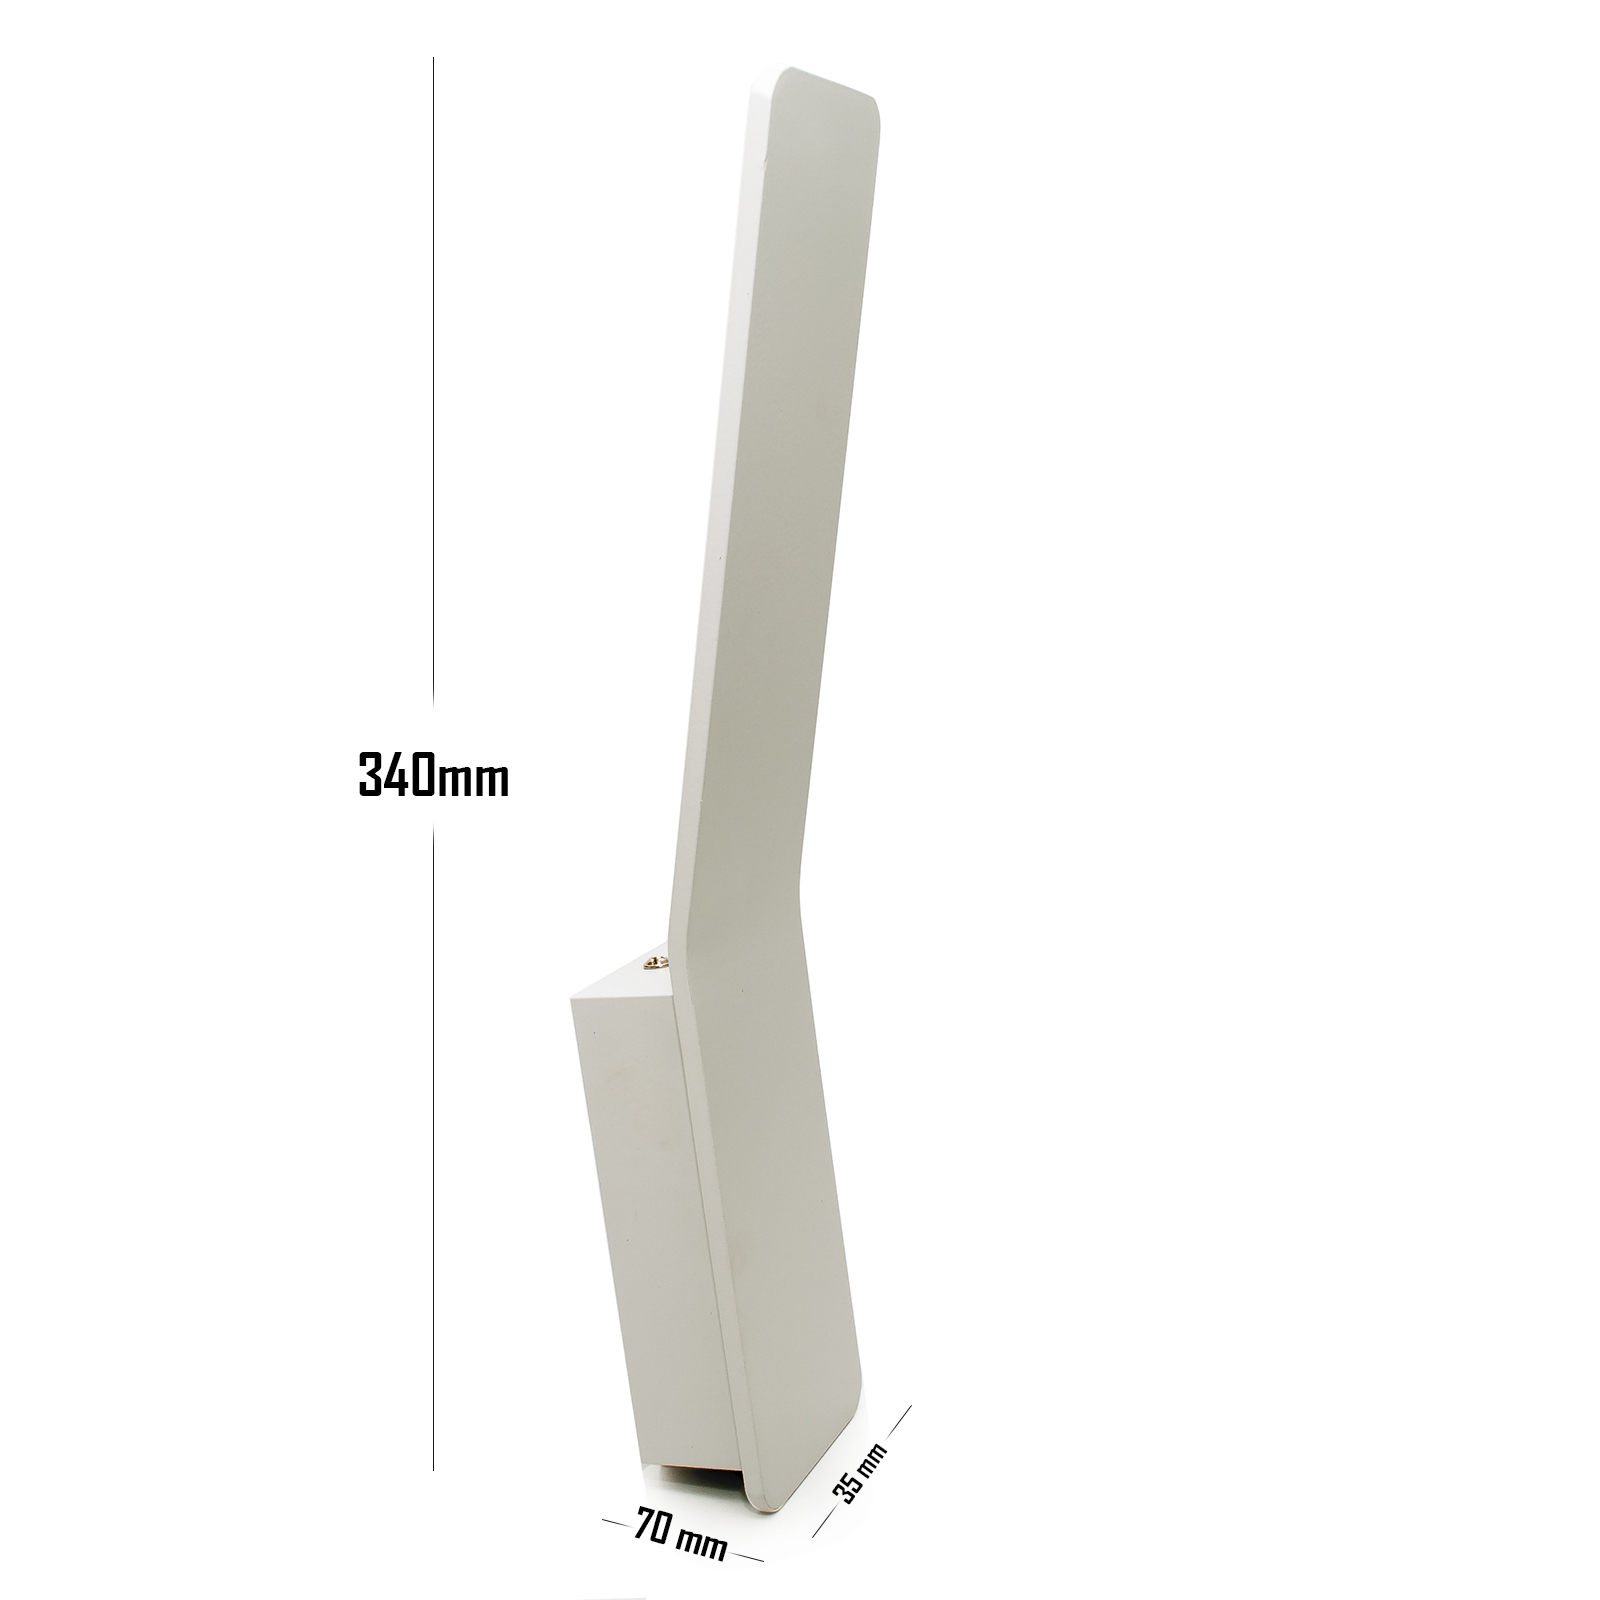 Applique led modern white 10W wall slim metal lamp built-in led 1100lm